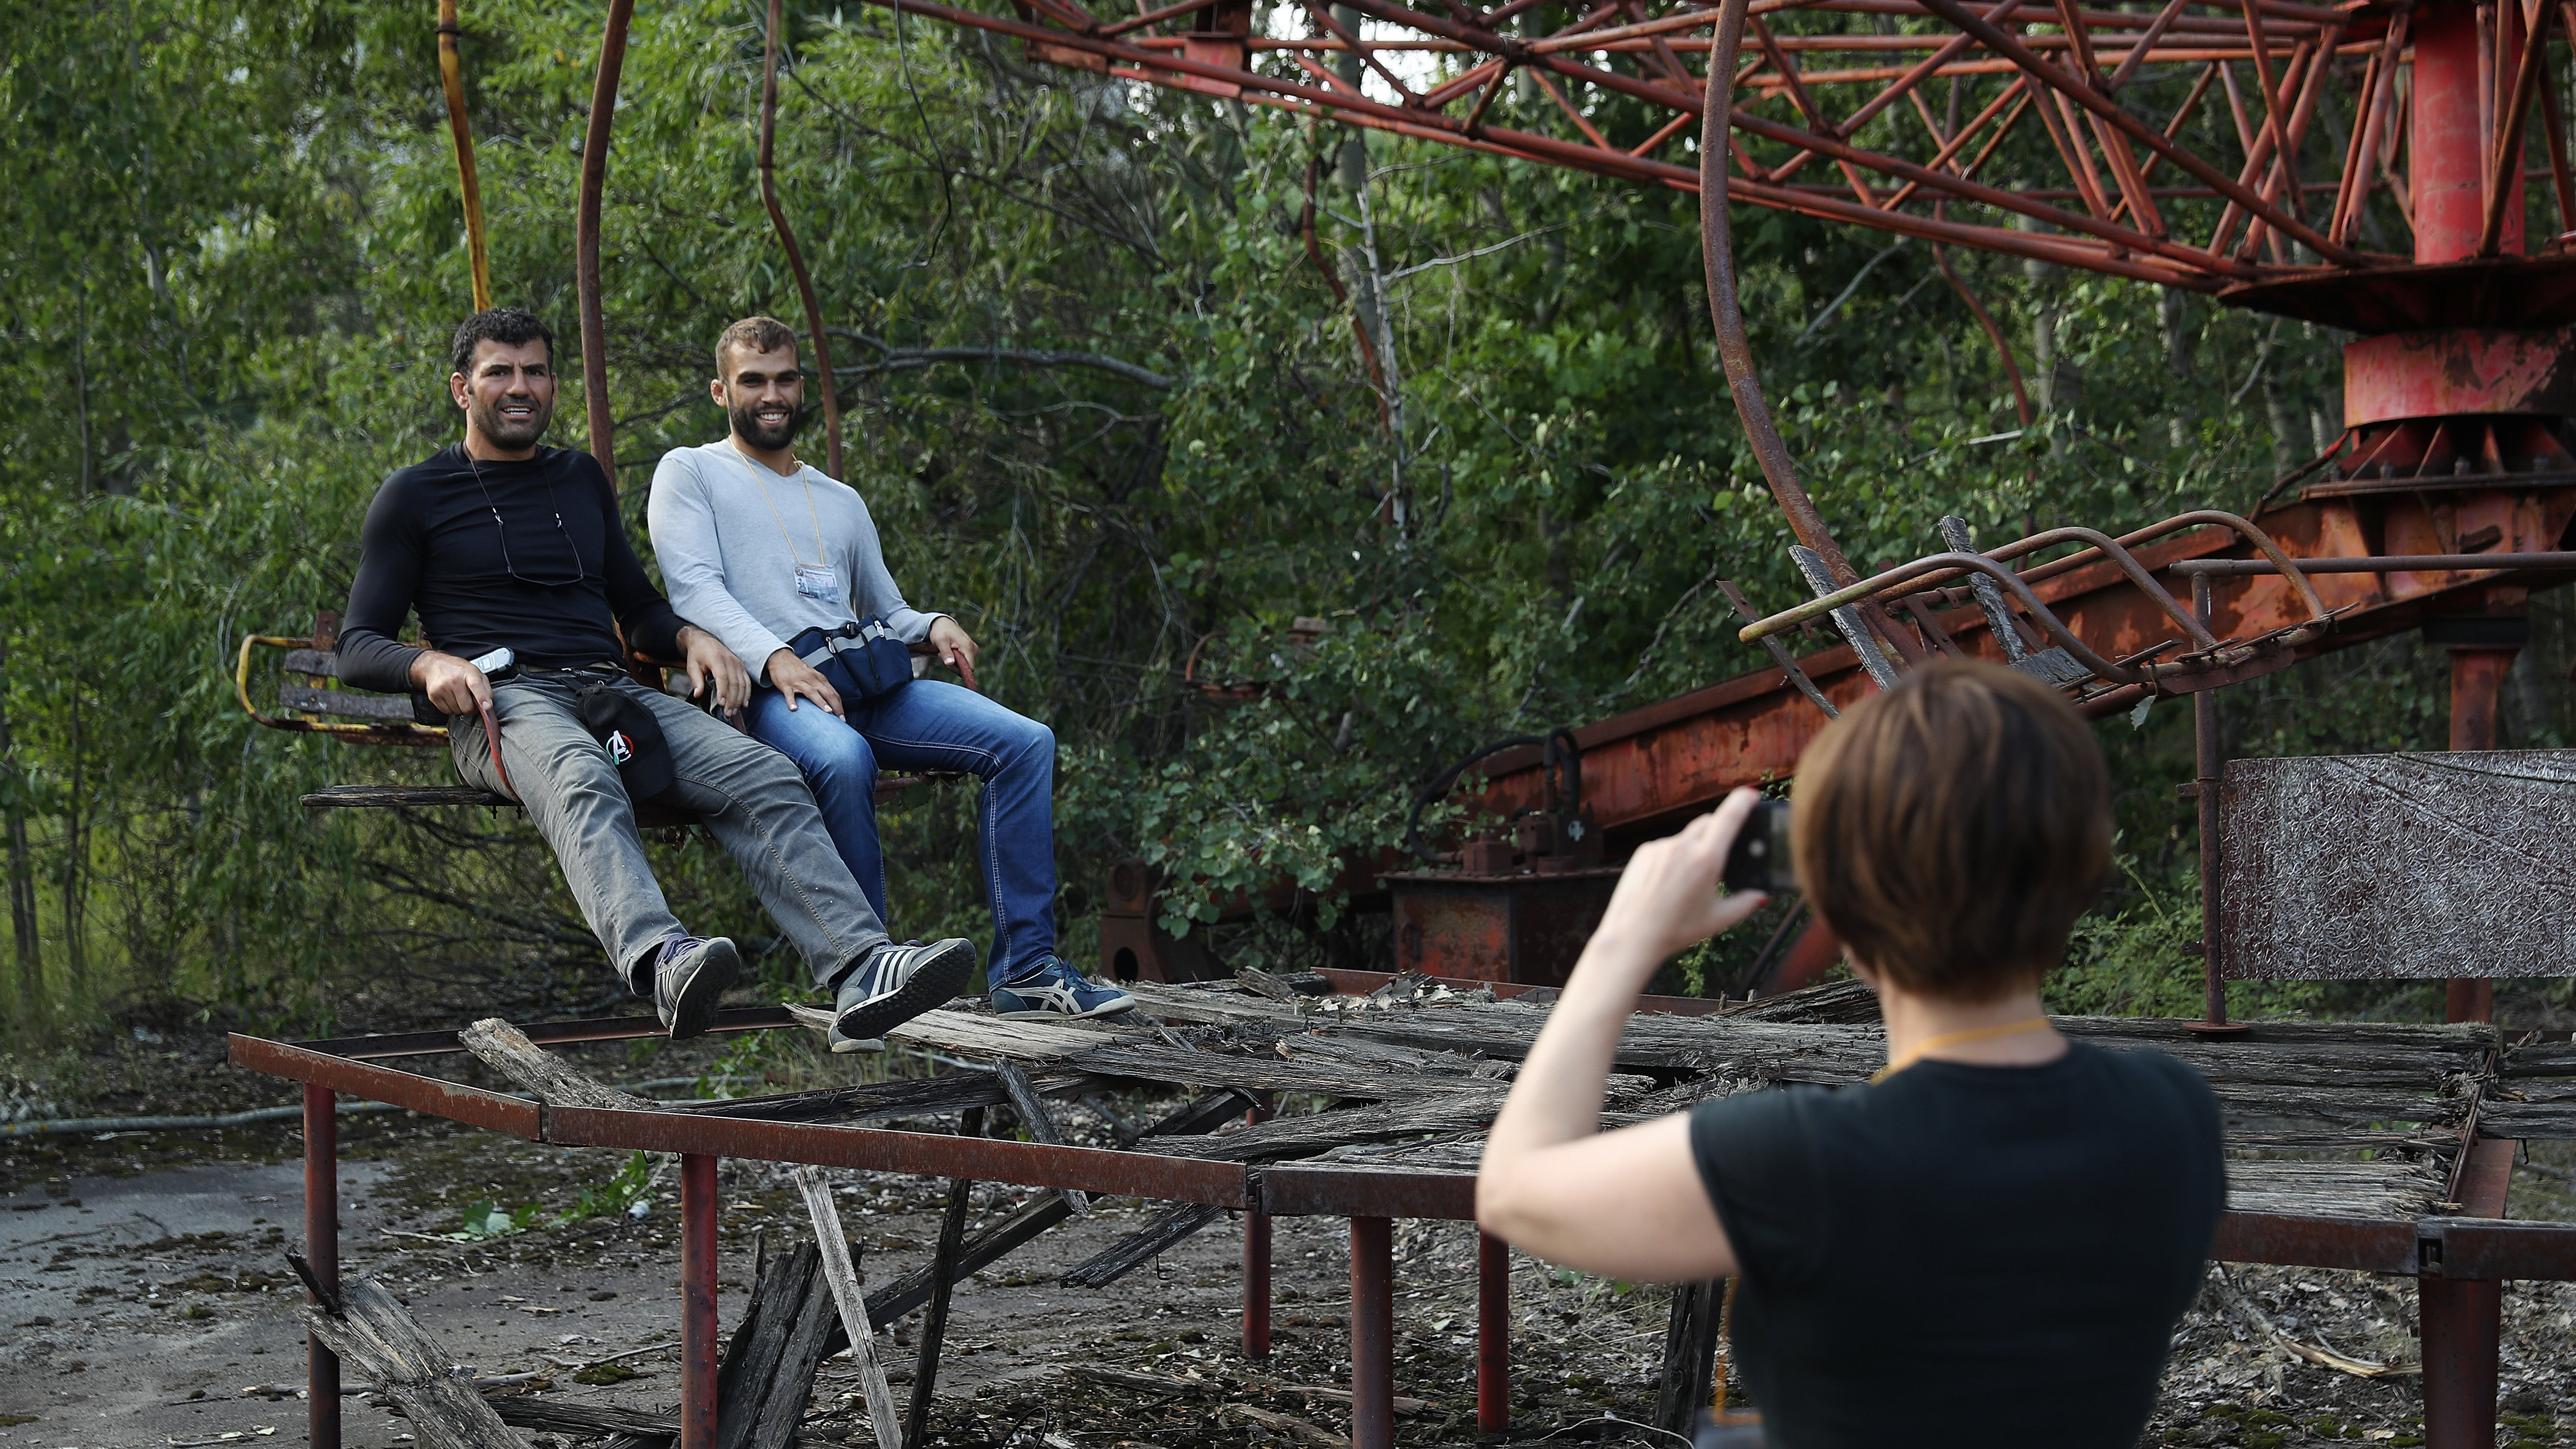 Creator Of HBO's Chernobyl Asks People Not To Snap Embarrassing Photos At Disaster Site